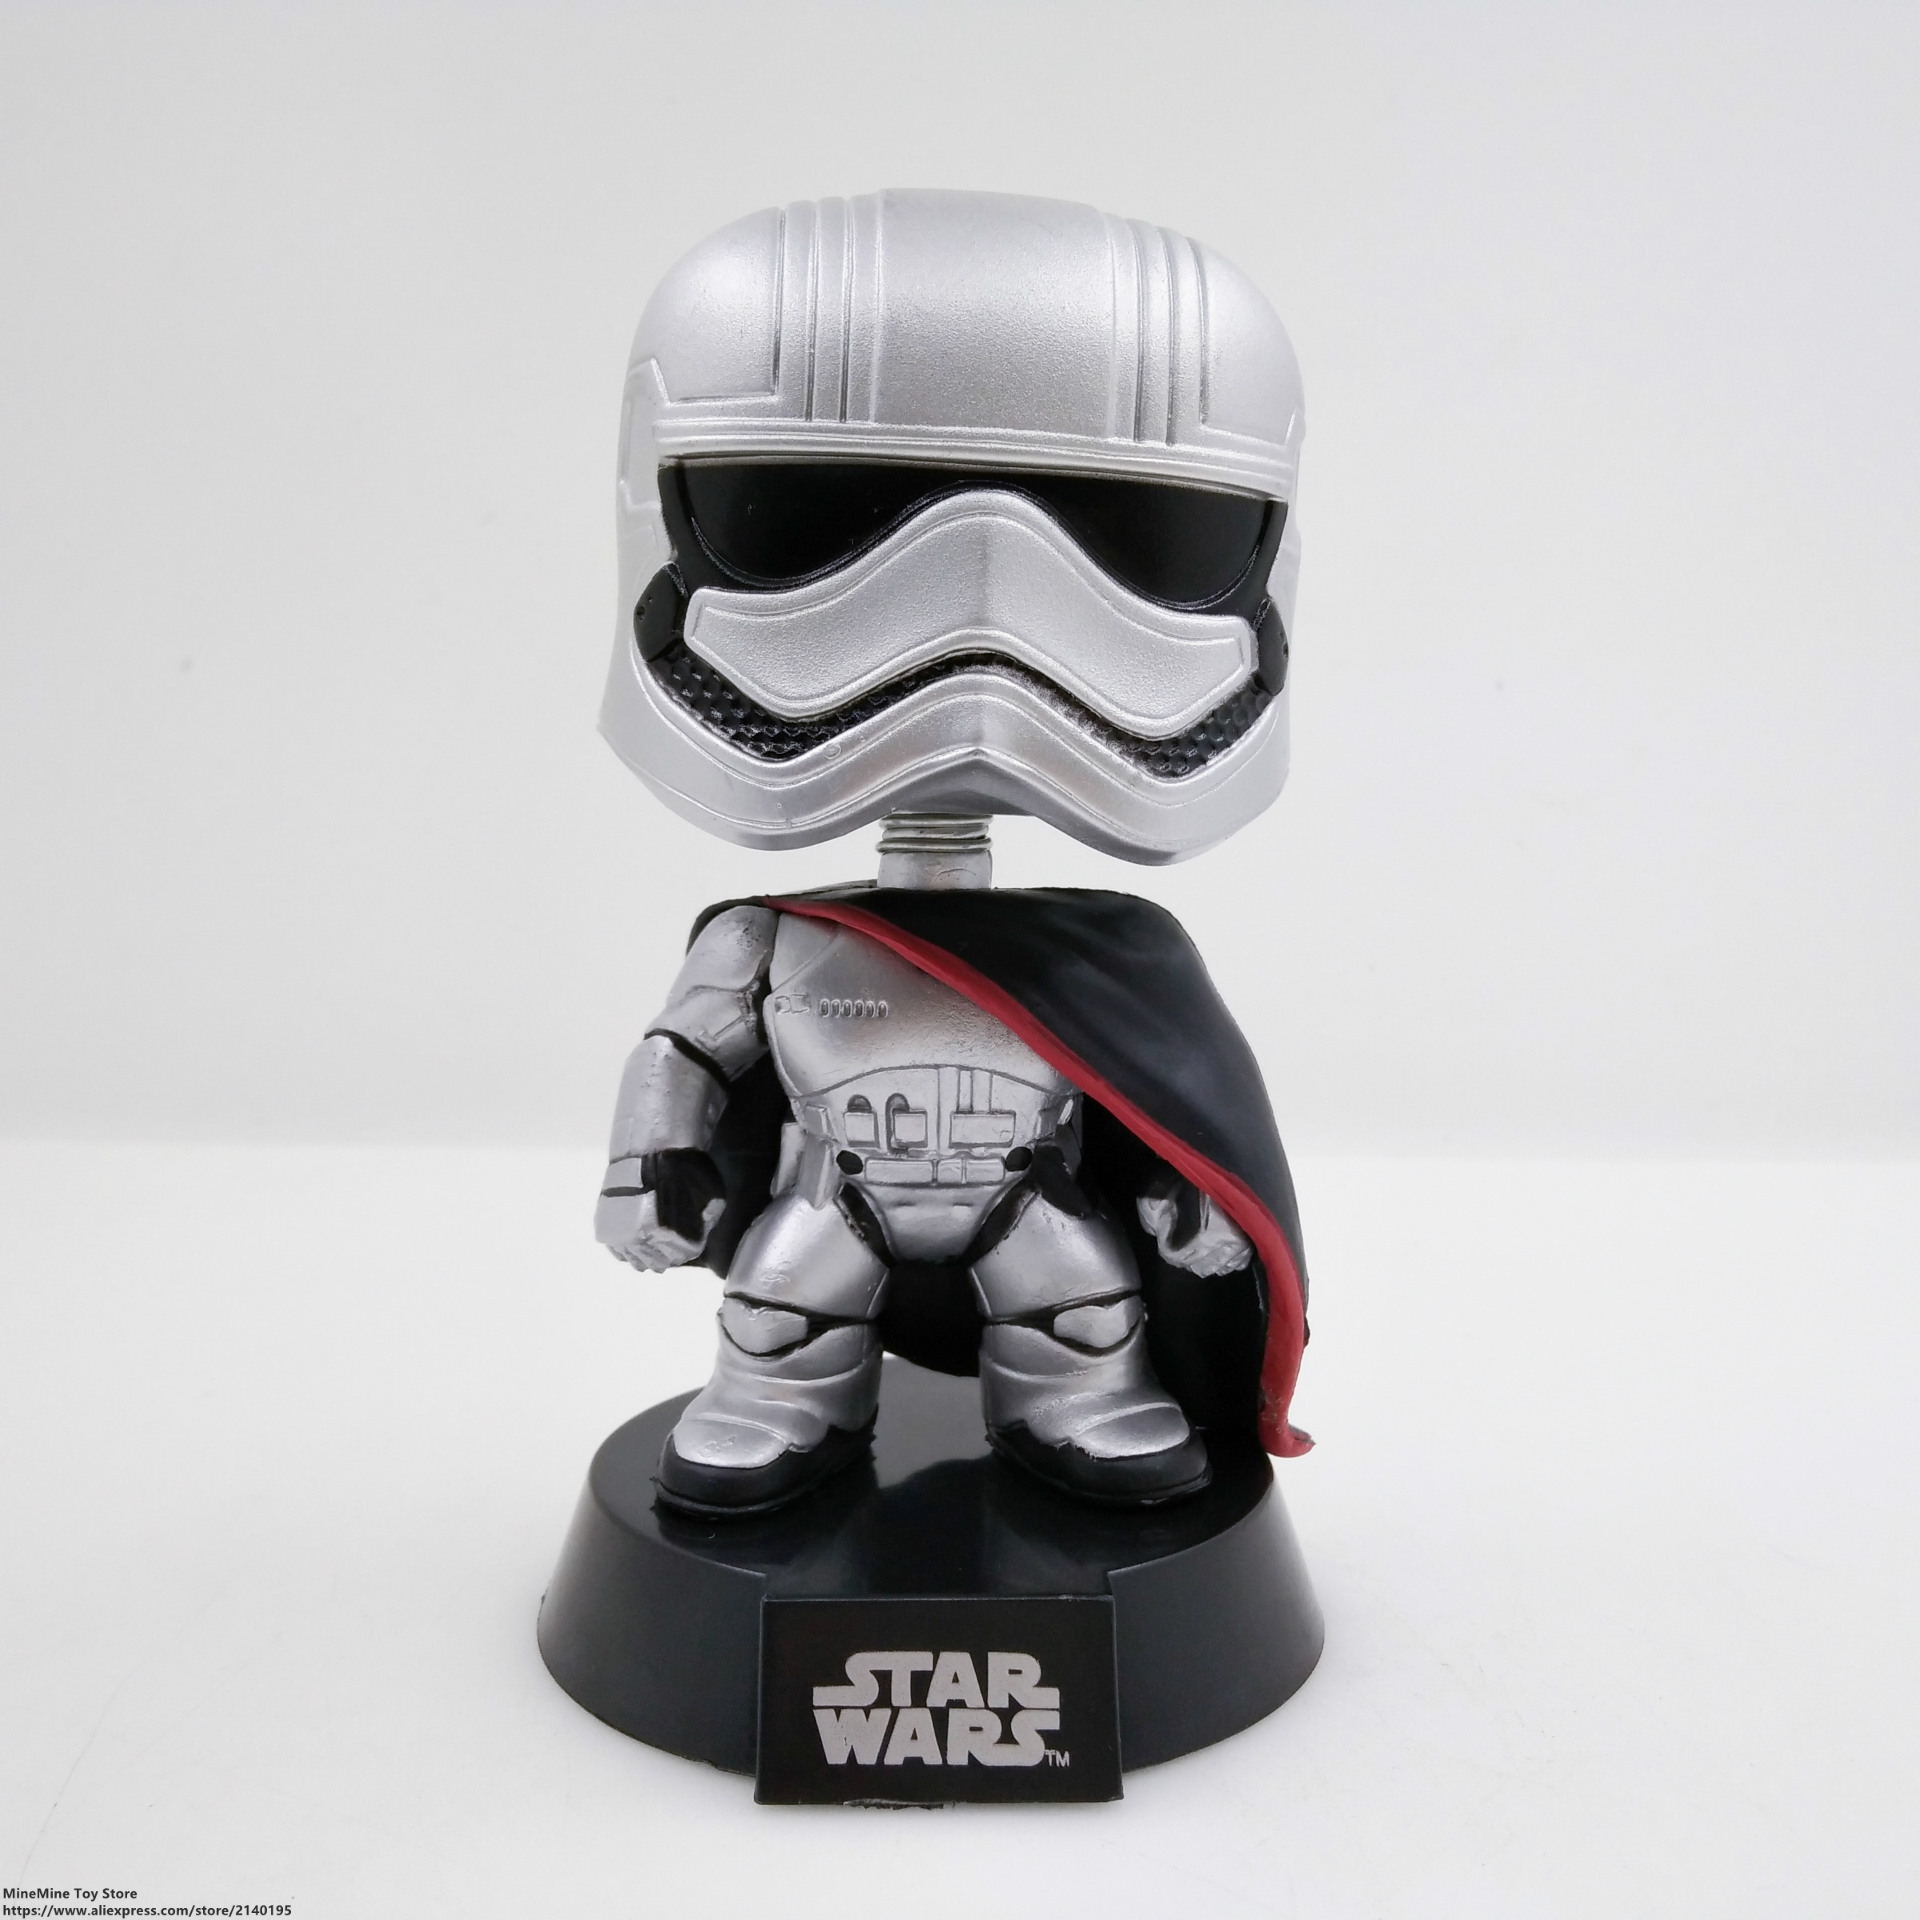 ZXZ Star Wars Captain Phasma 12cm Q version Action Figure Posture Anime Decoration Collection Figurine Toys model children